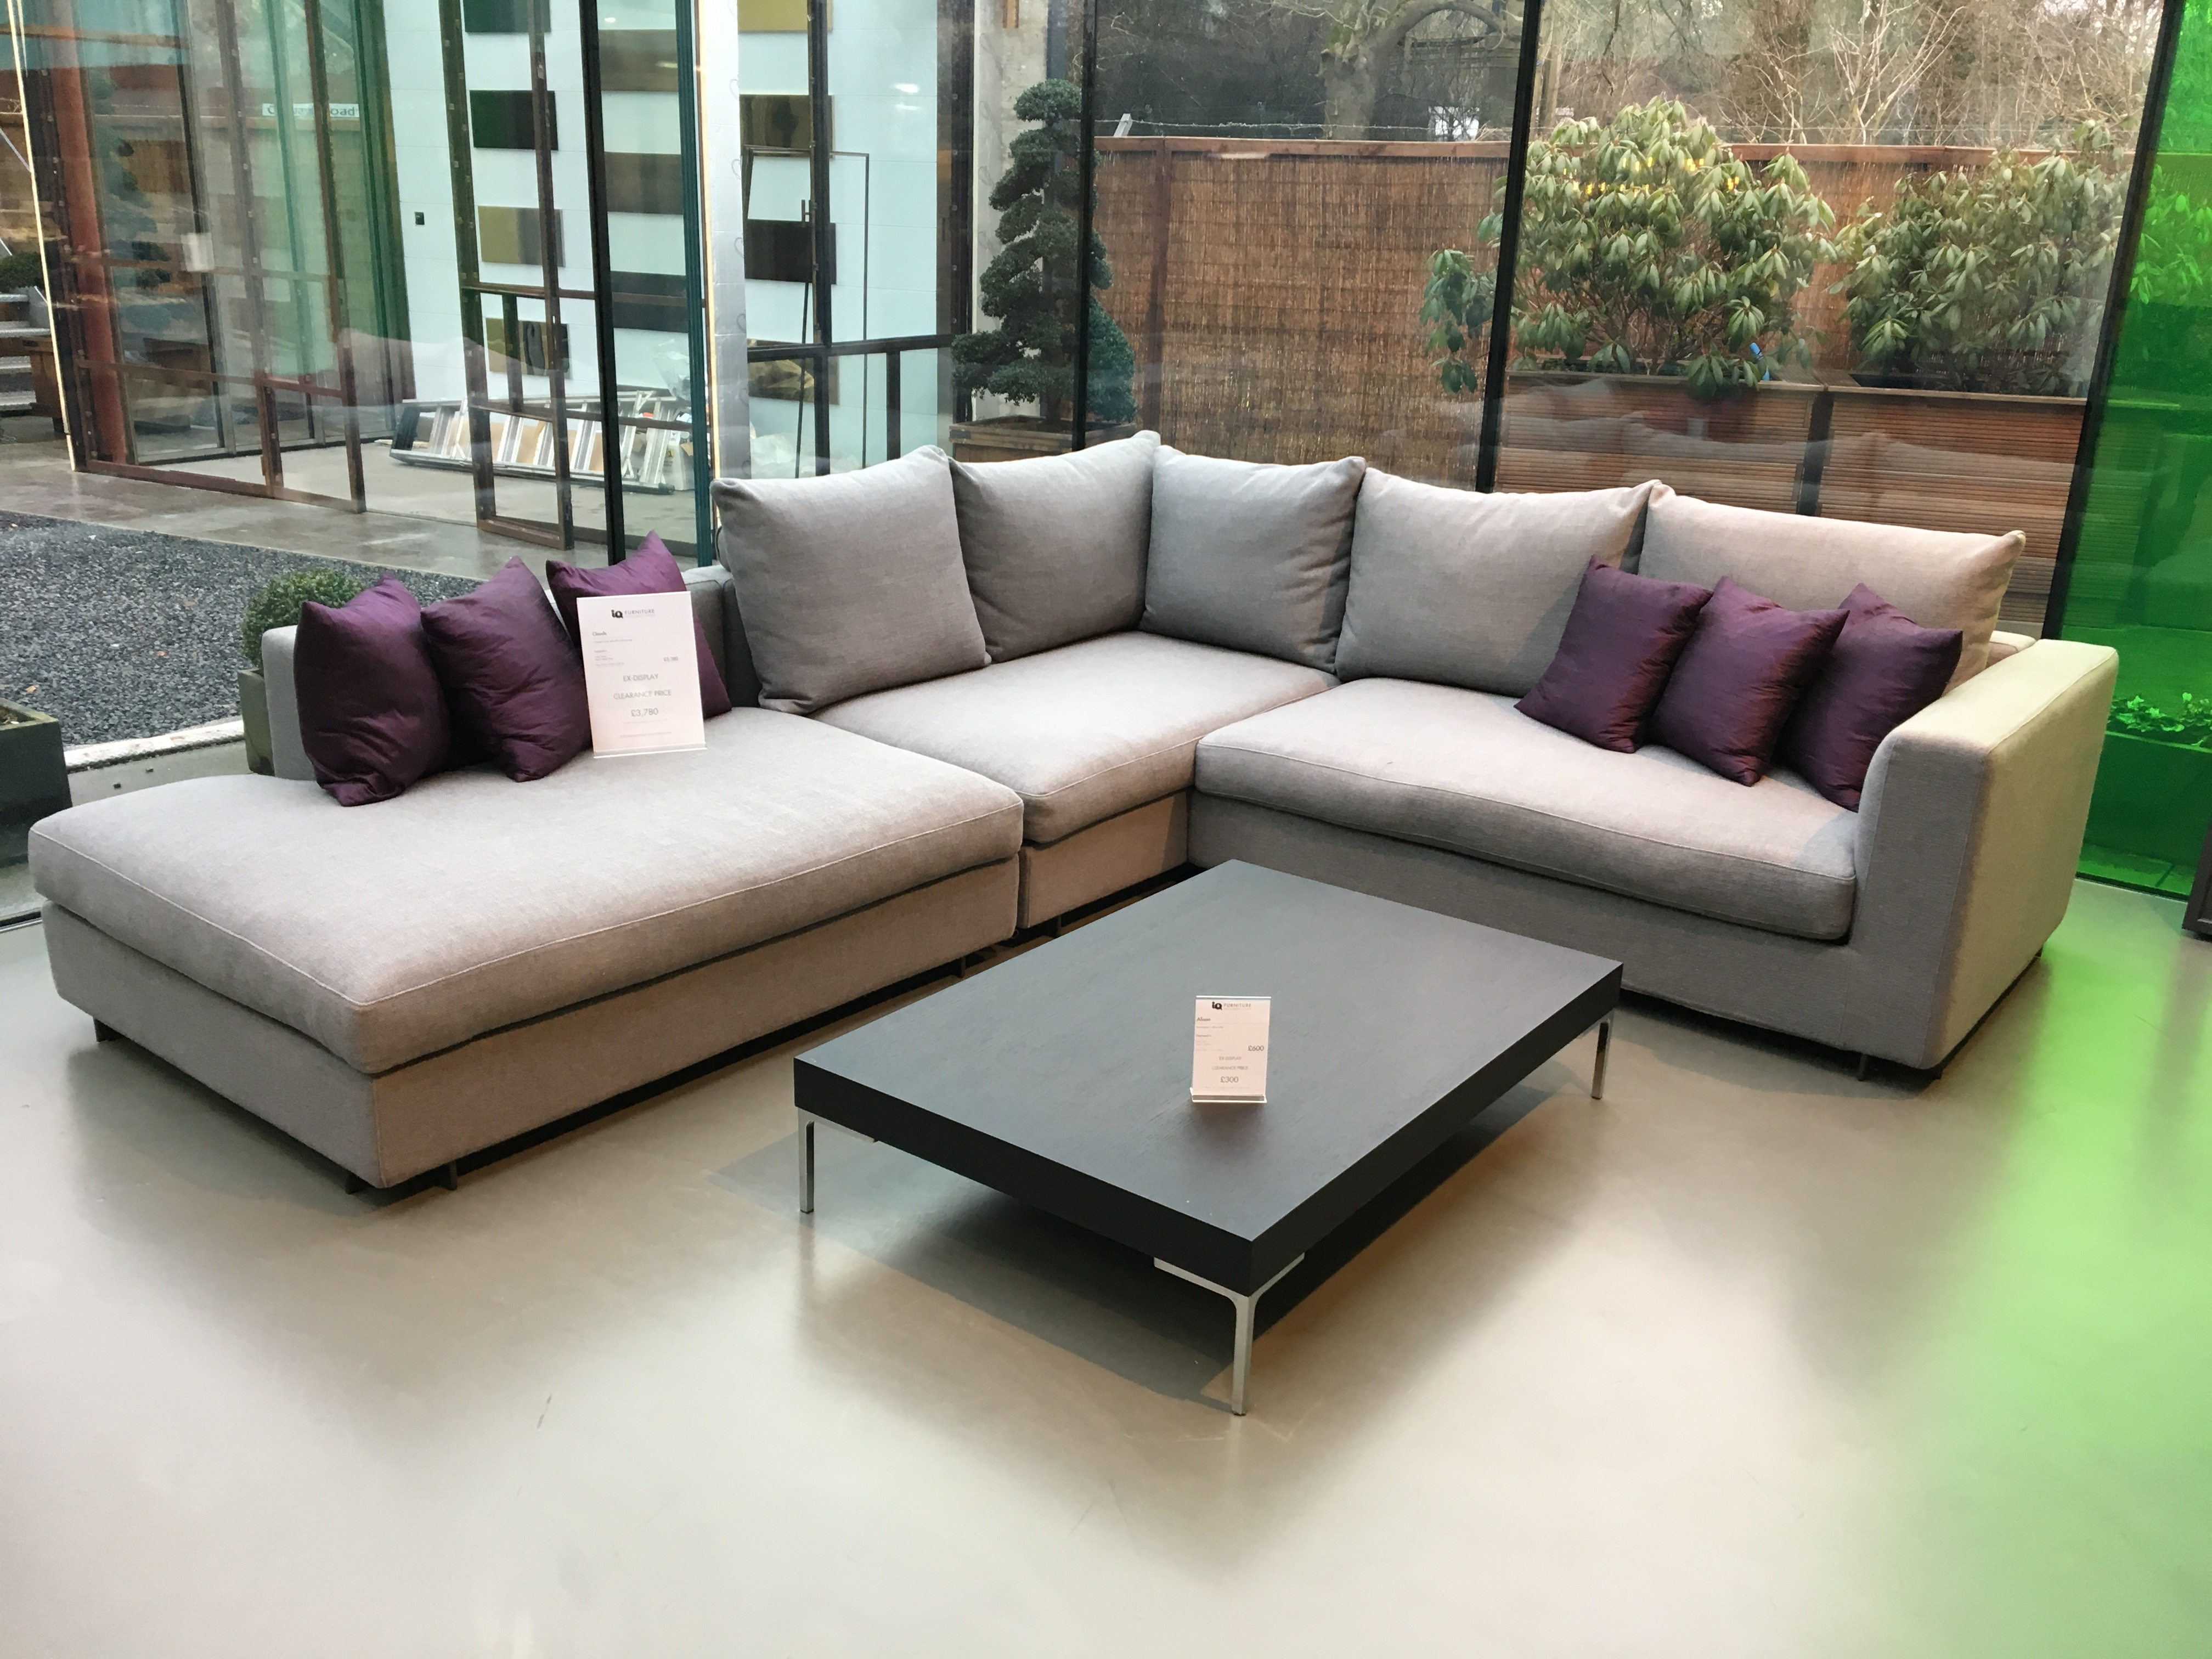 Our Latest Clearance Sale Items 15th March 2017 News Iq Furniture